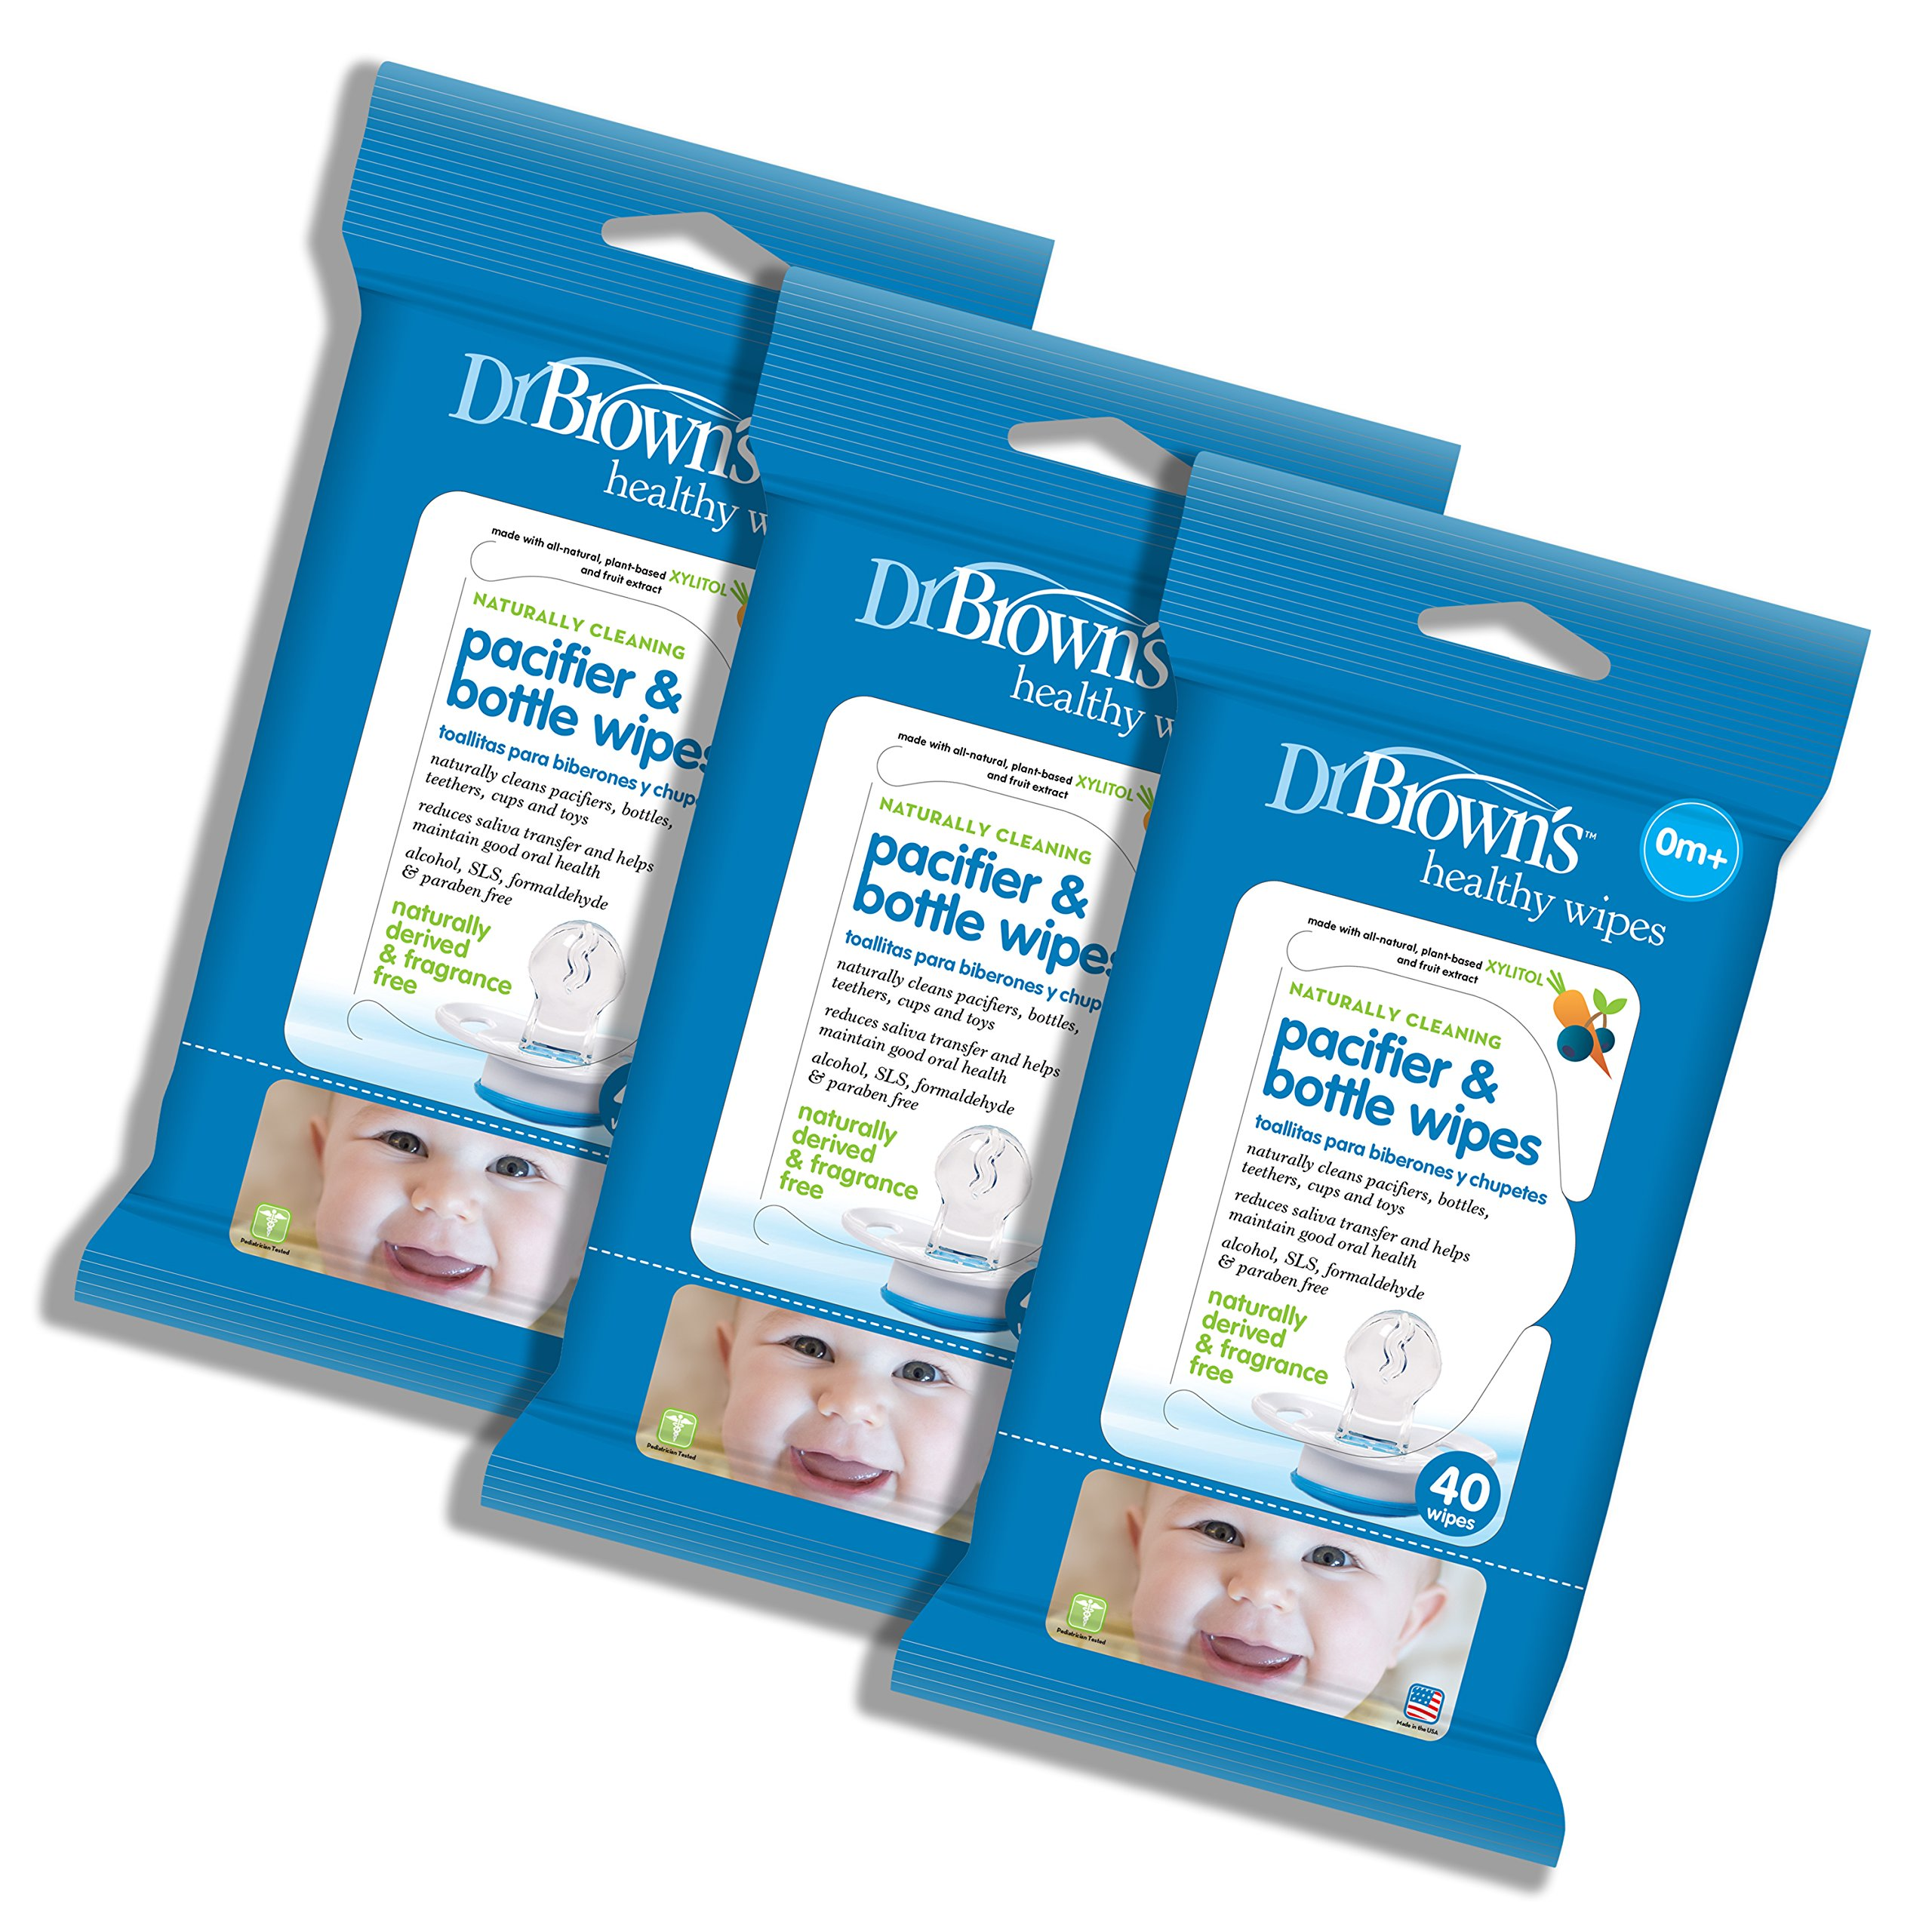 Dr. Brown's Pacifier and Bottle Wipes, 40 Count, 3-Piece by Dr. Brown's